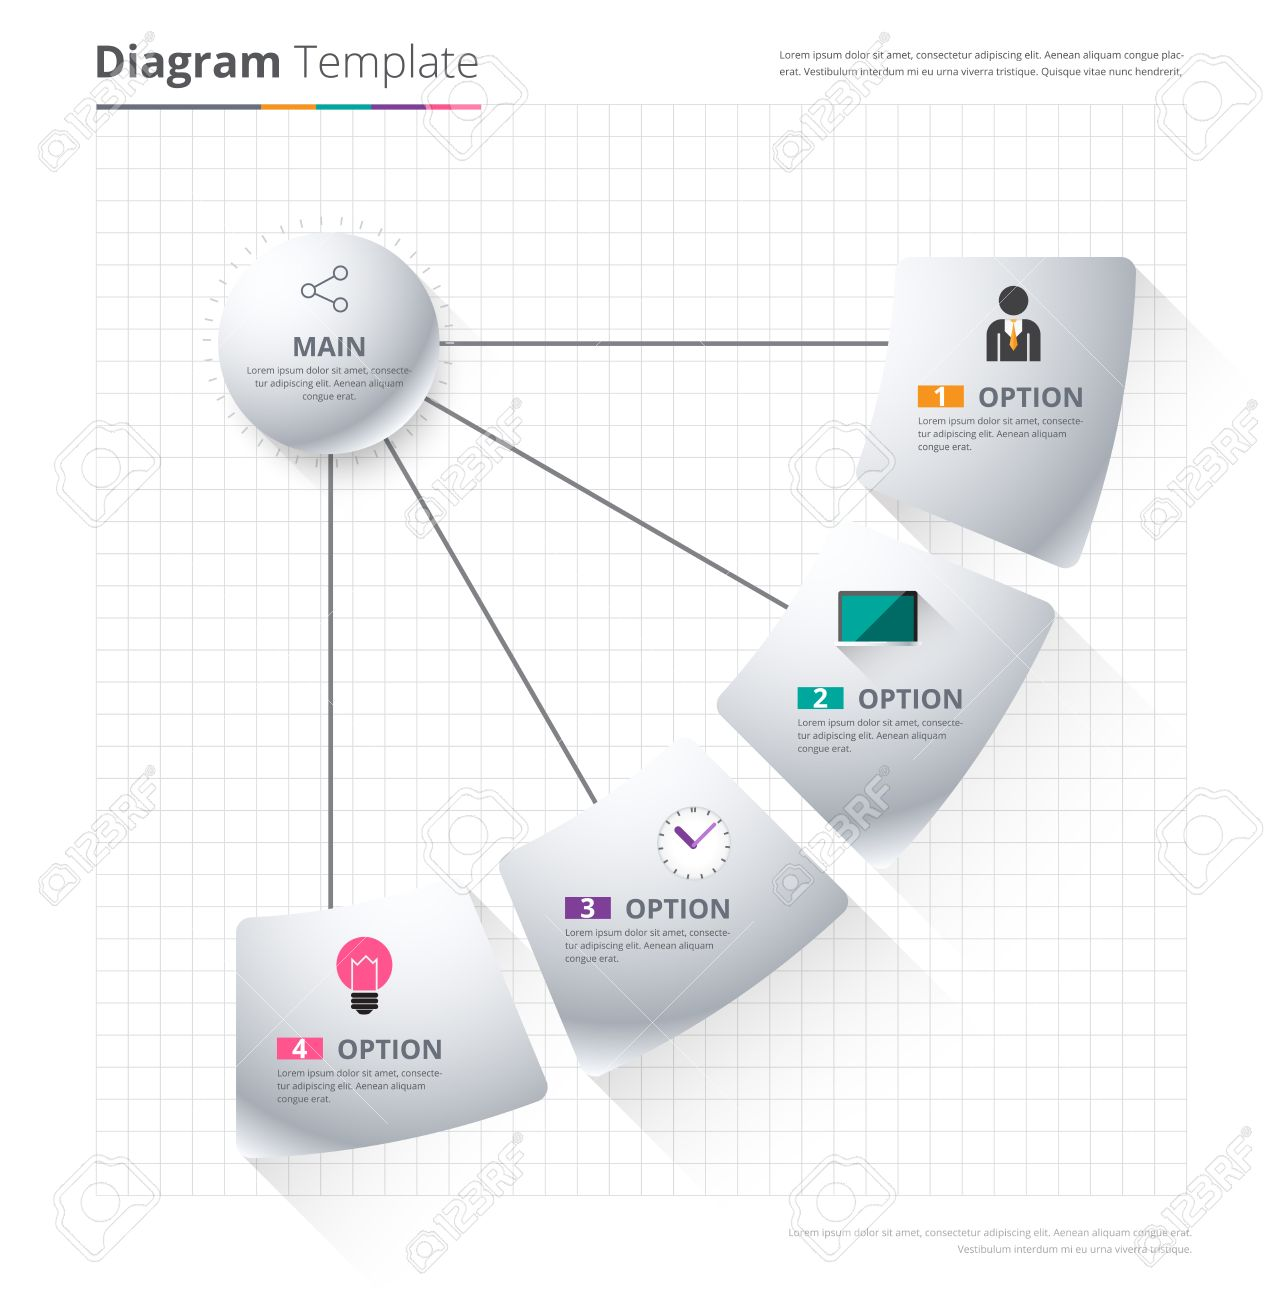 Diagram template organization chart template flow template diagram template organization chart template flow template blank diagram for replace text ccuart Image collections